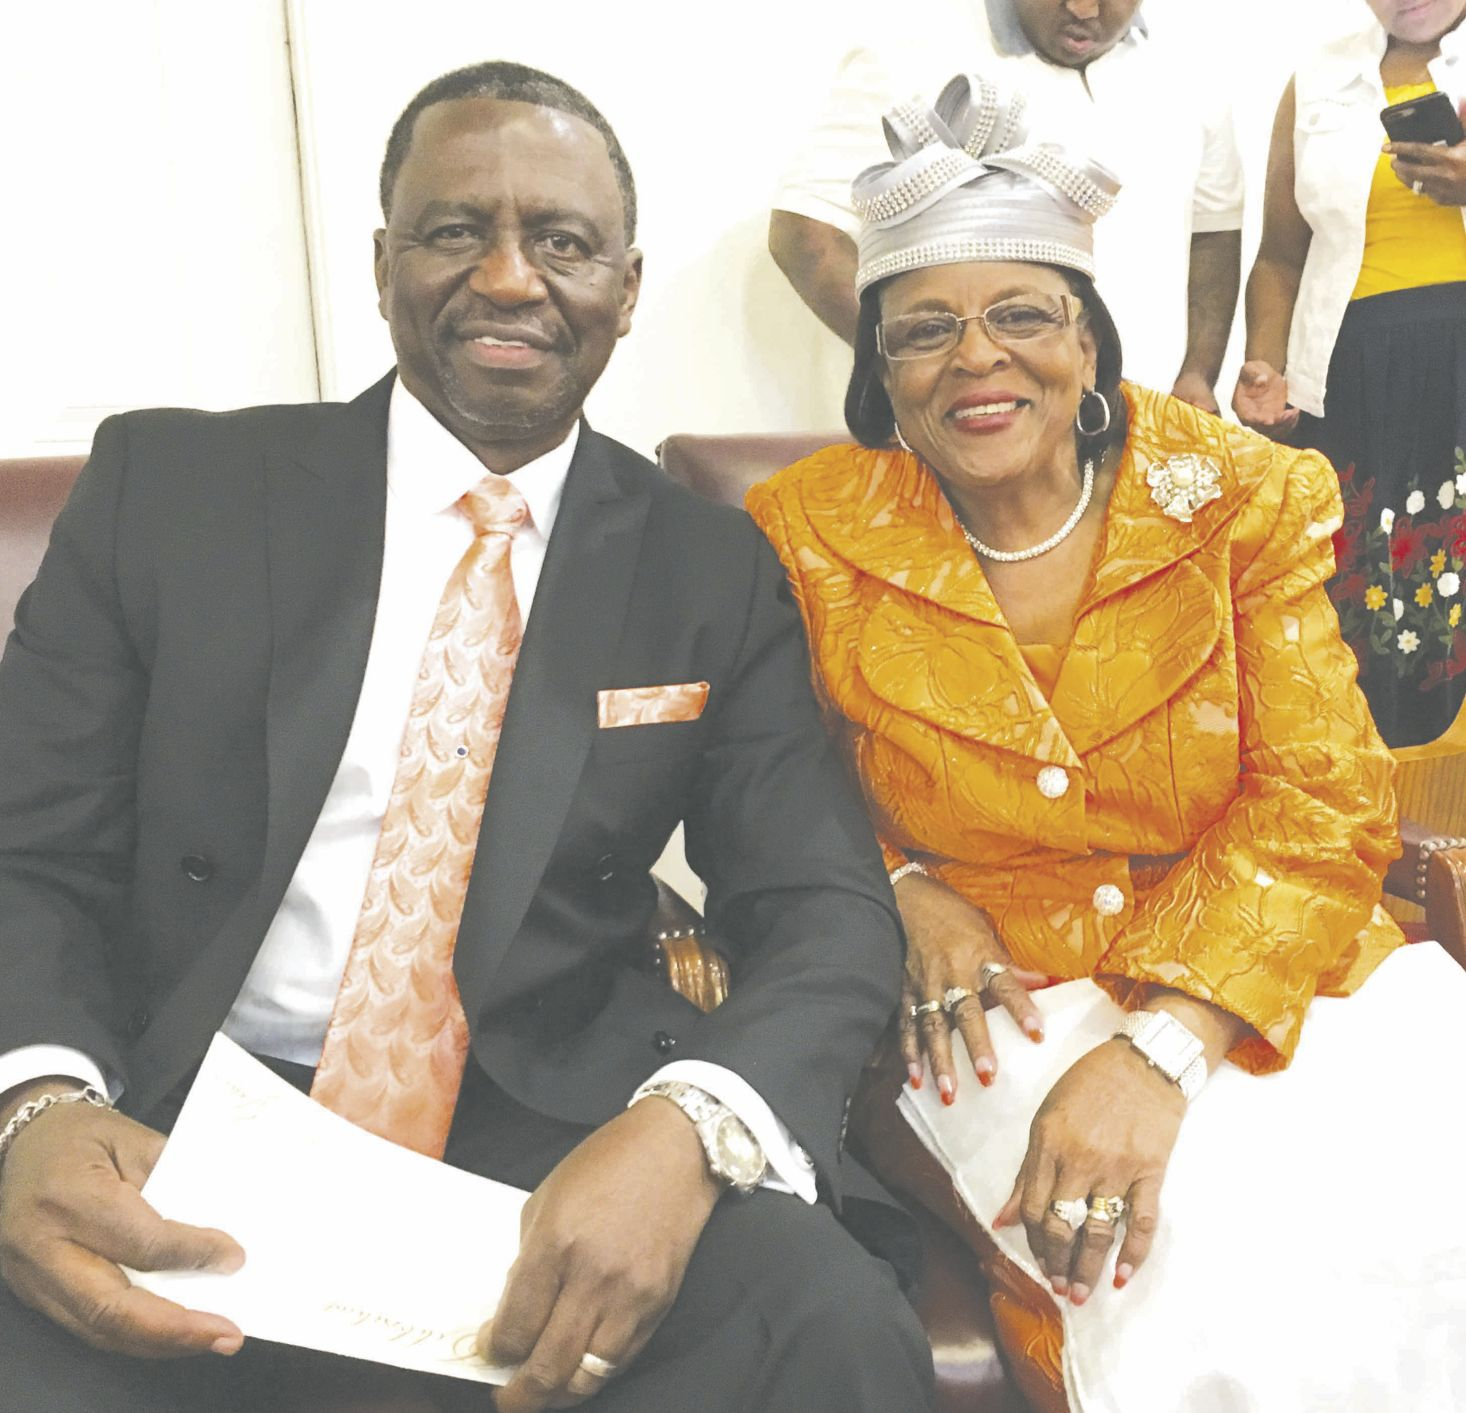 Rev. and Mrs. Roy Duncan